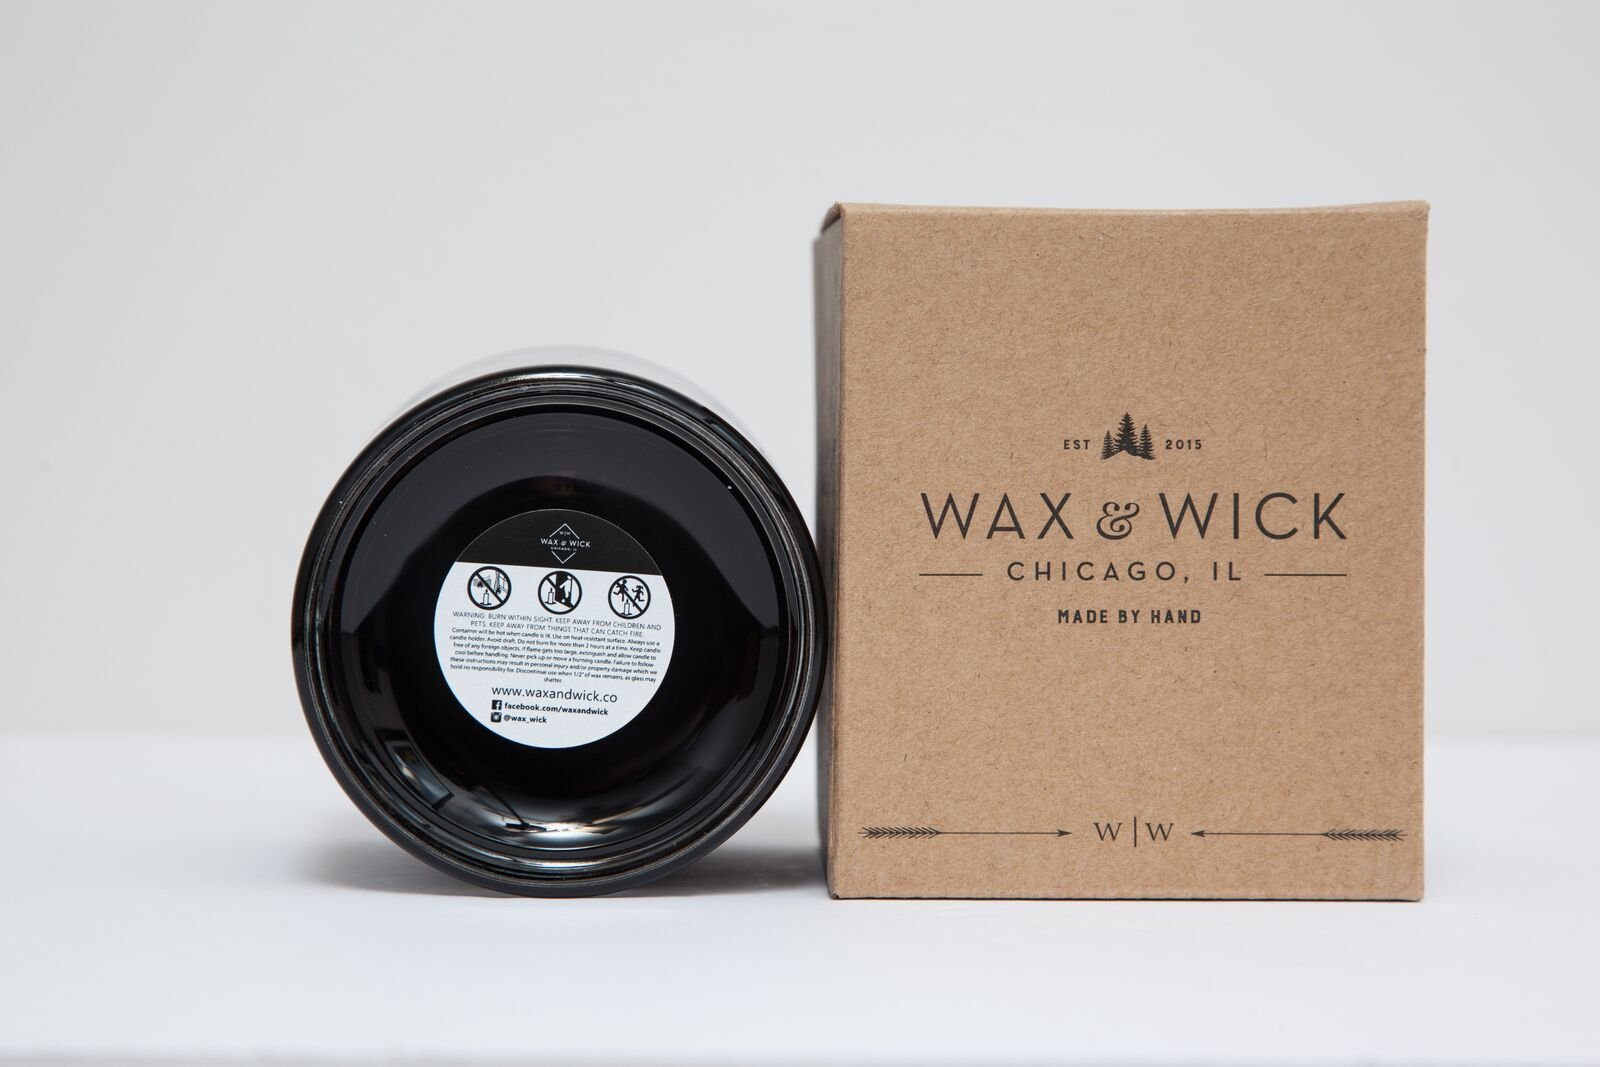 Scented Soy Candle: 100% Pure Soy Wax with Wood Double Wick | Burns Cleanly up to 60 Hrs | Mulled Cider Scent - Notes of Apple, Nutmeg, Vanilla, Caramel. | 12 oz Black Jar by Wax and Wick by Wax & Wick (Image #5)